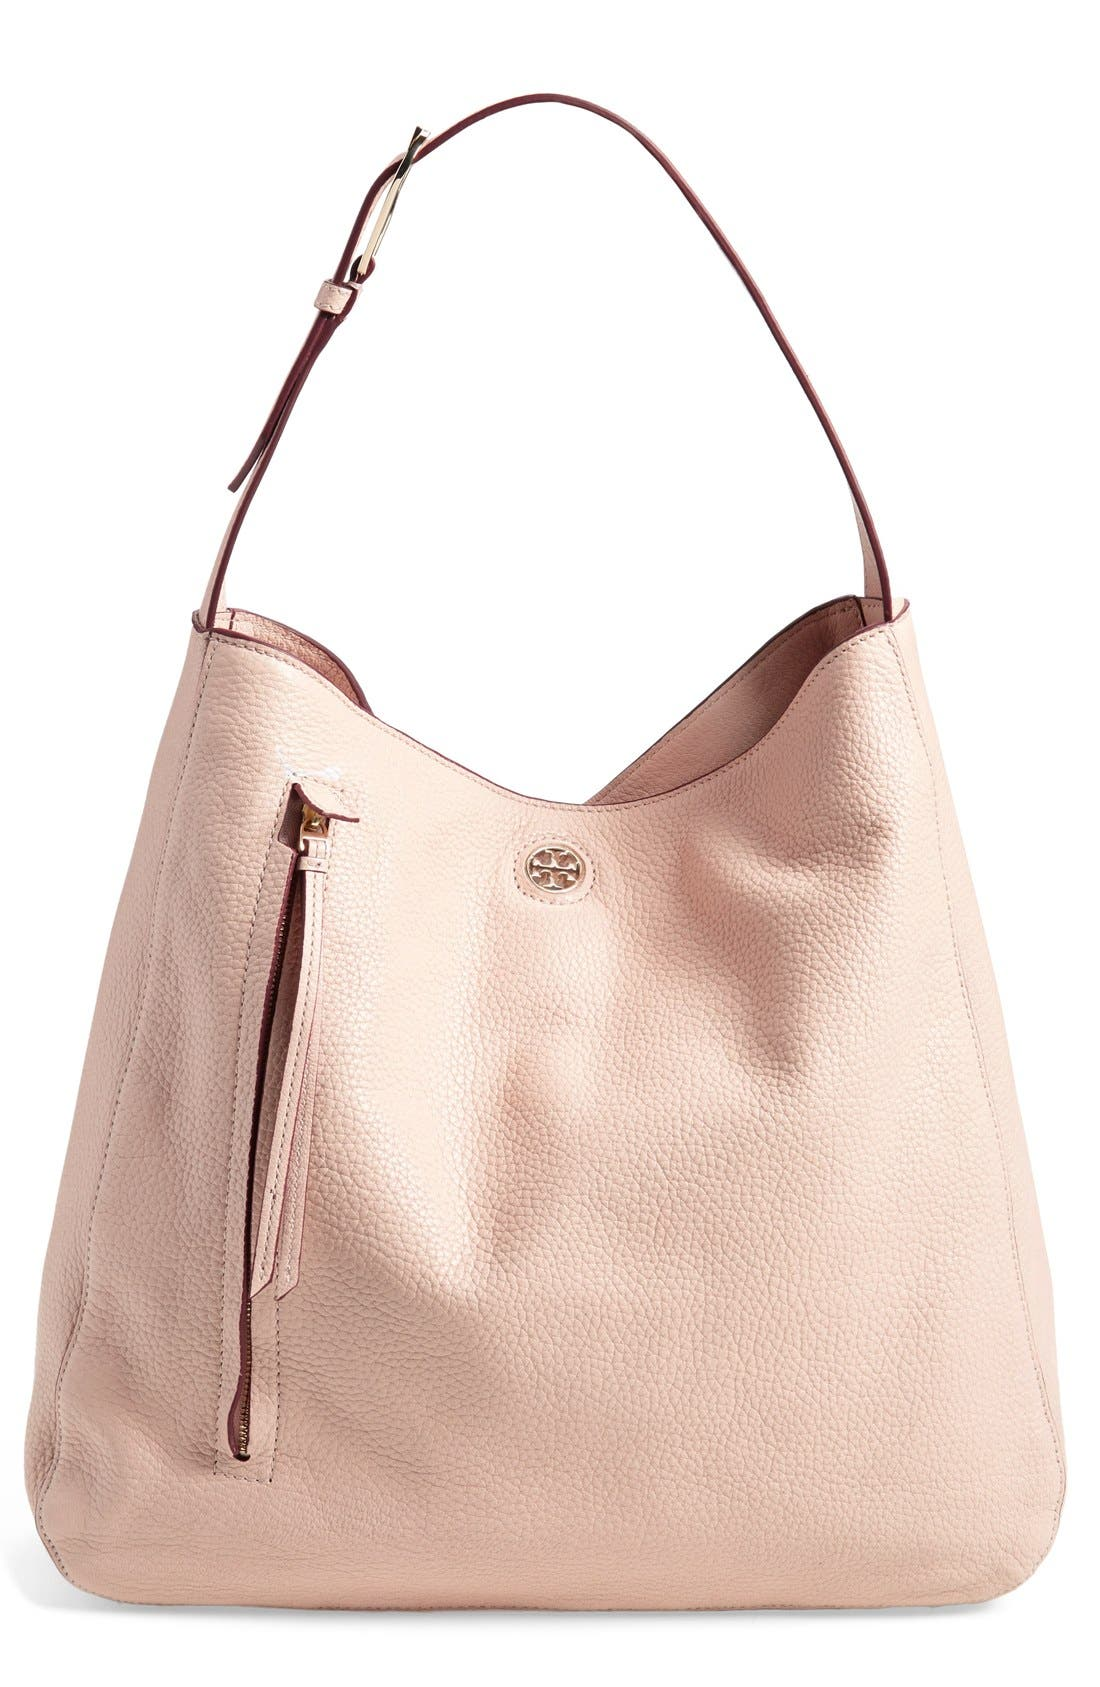 Alternate Image 1 Selected - Tory Burch 'Brody' Leather Hobo Bag